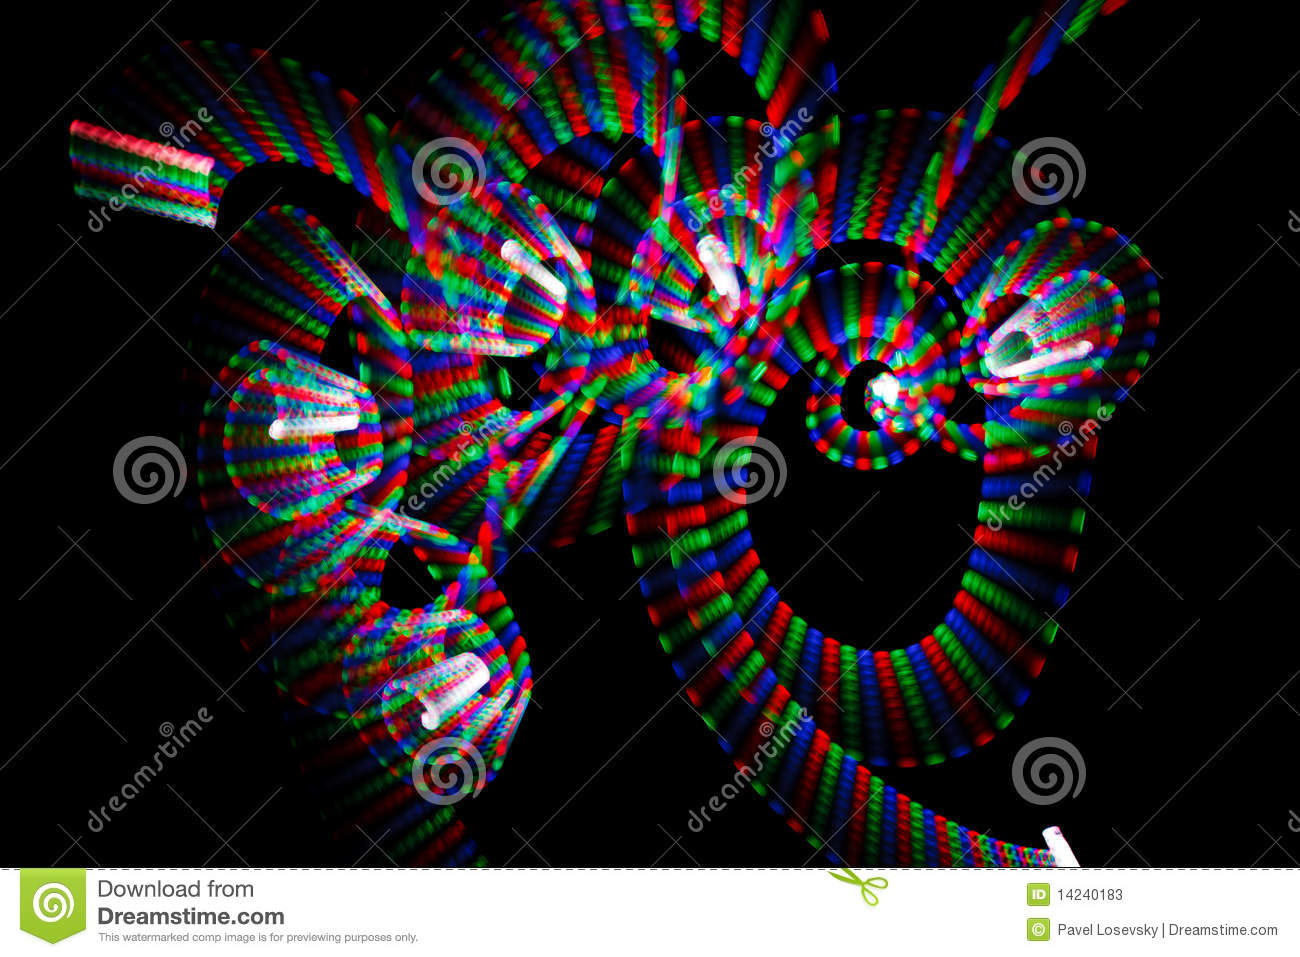 Multicolored freezelight in form of spirals